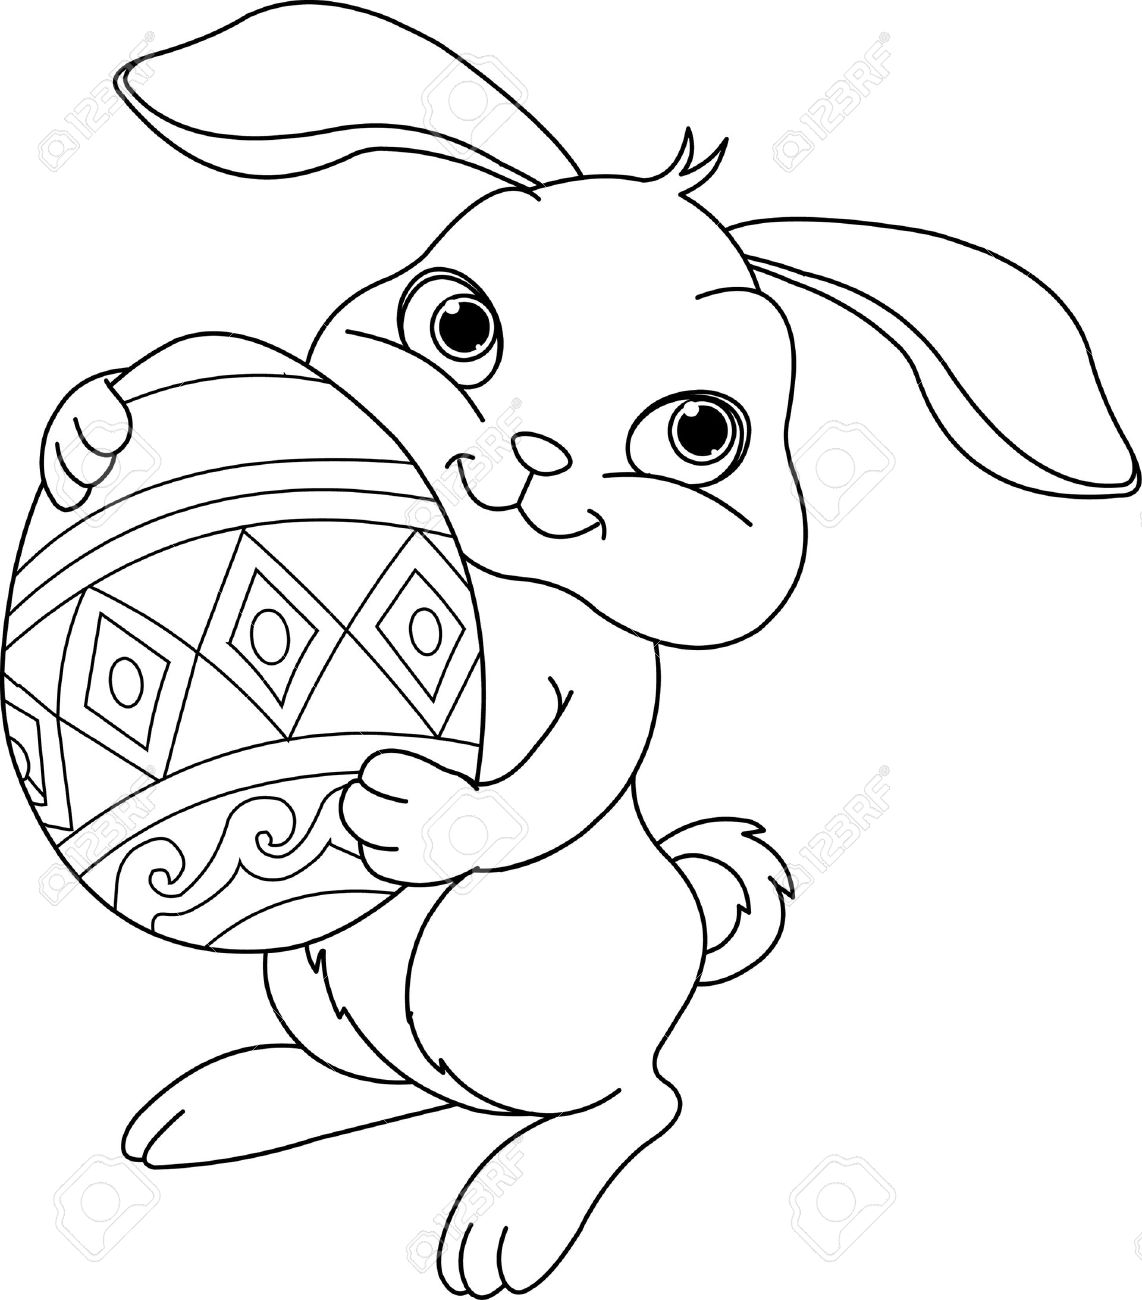 Illustration Of Happy Easter Bunny Carrying Egg Coloring Page Stock Vector